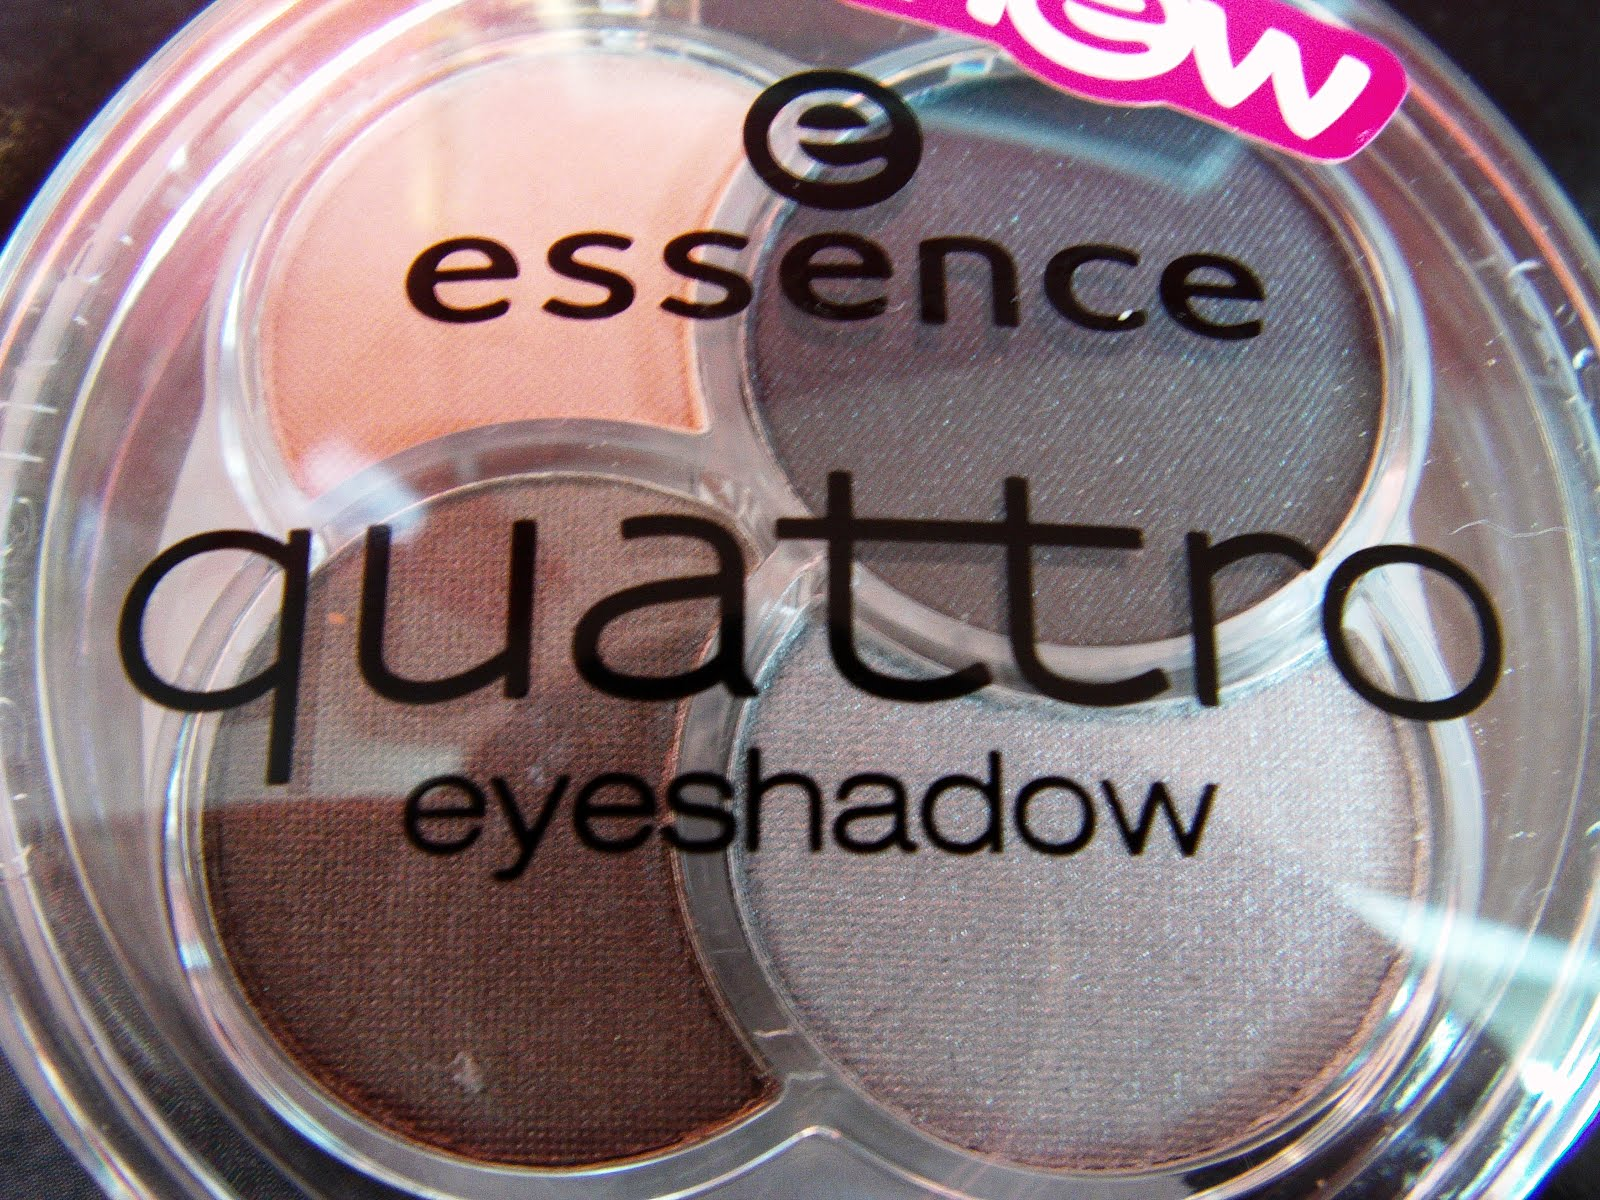 All About Nails Essence Quattro Eyeshadow CHIC IFY